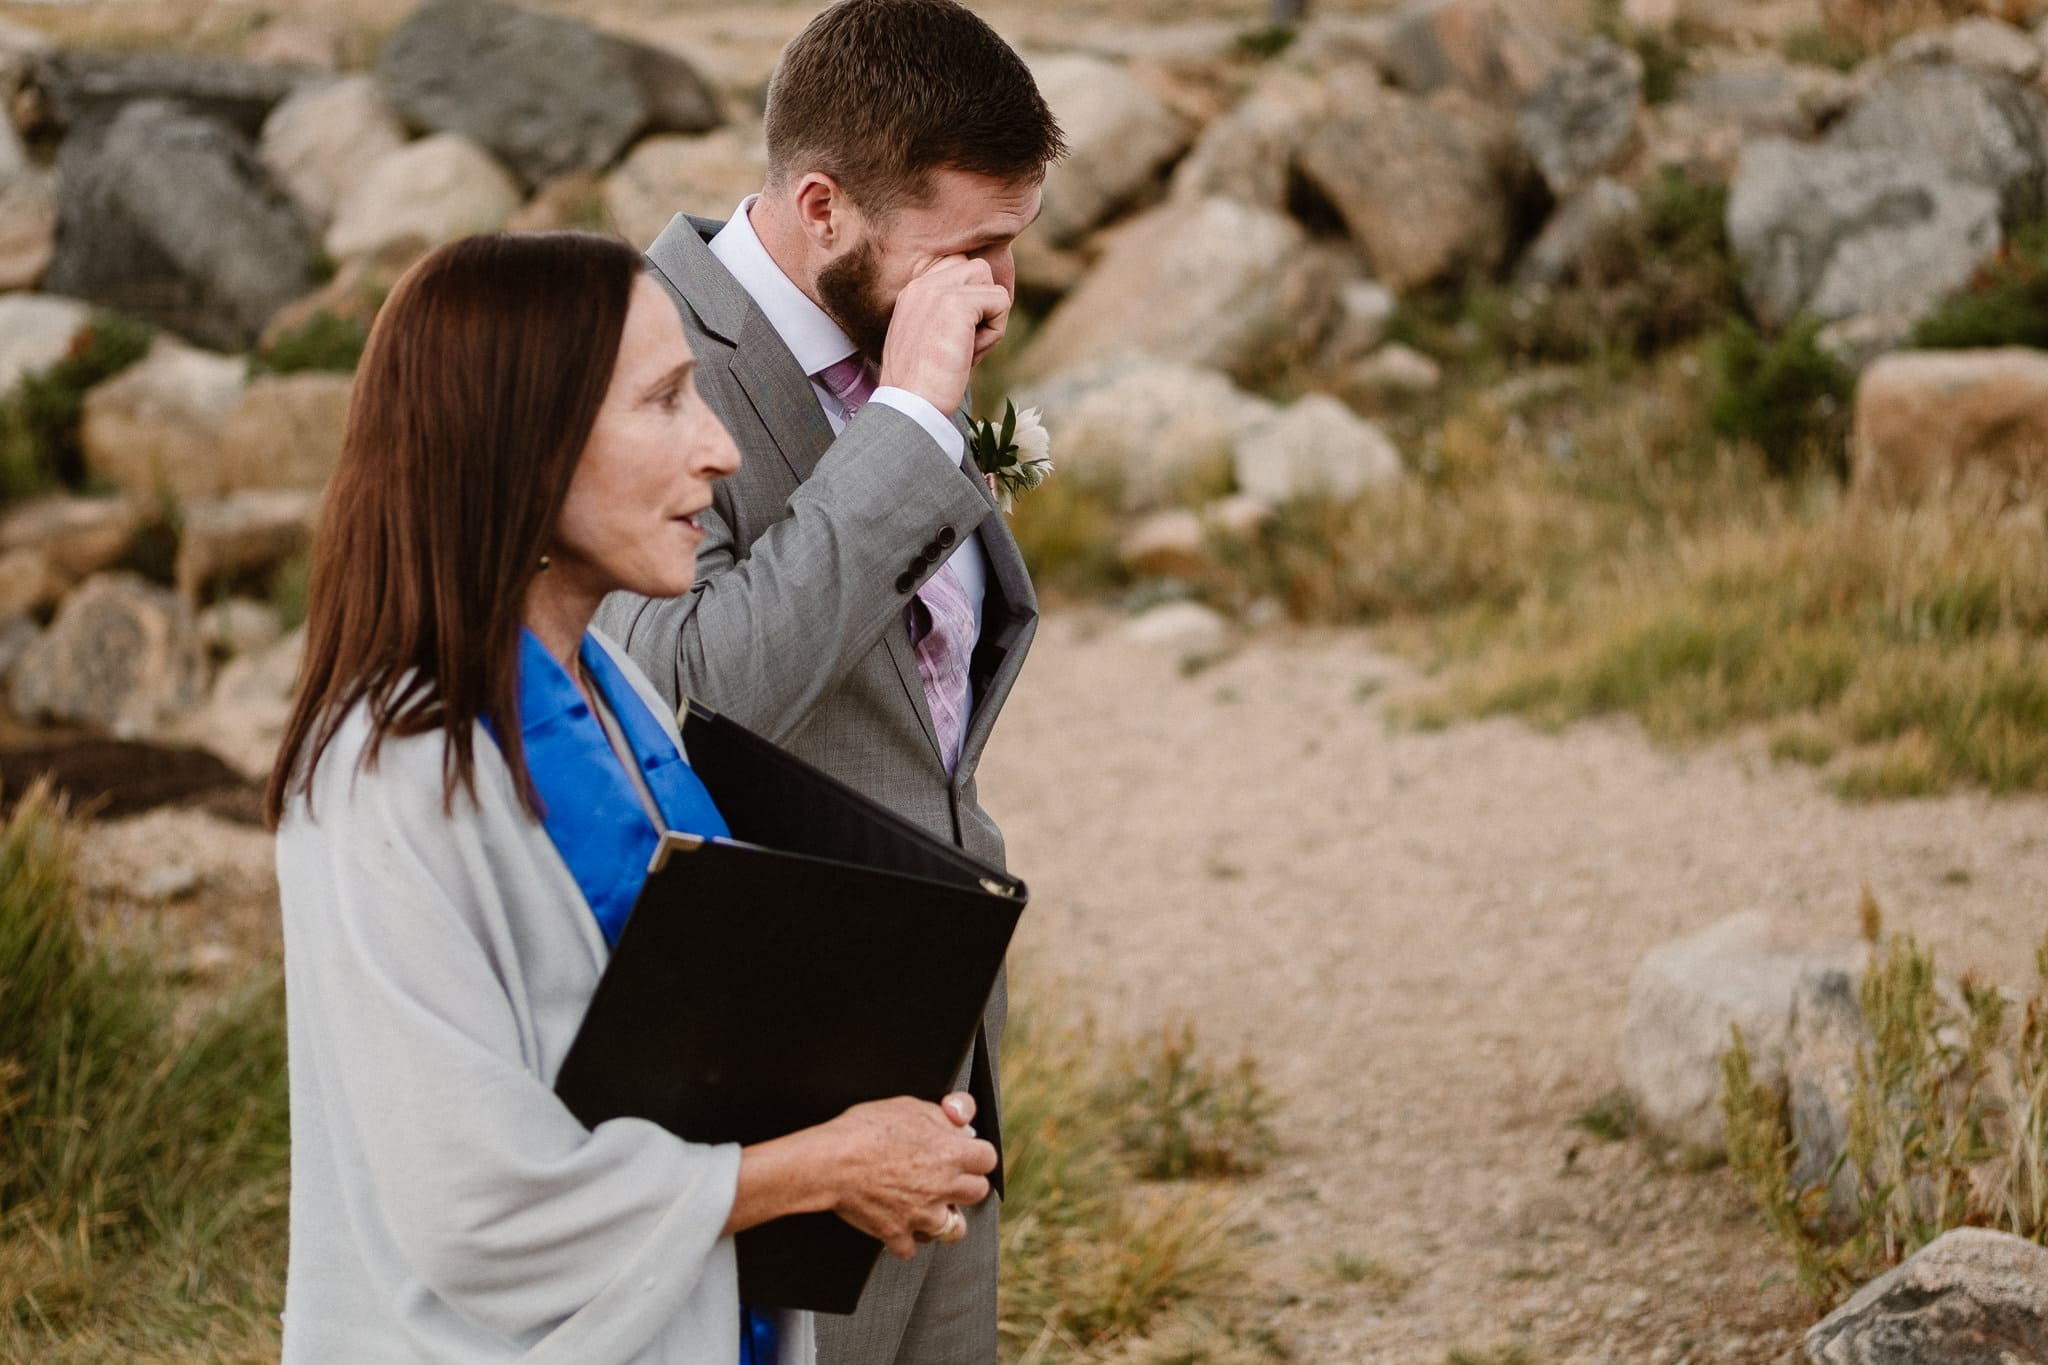 Groom watching bride walk down aisle at Colorado mountain elopement, Boulder wedding photographer, alpine lake adventure elopement, groom wiping tear